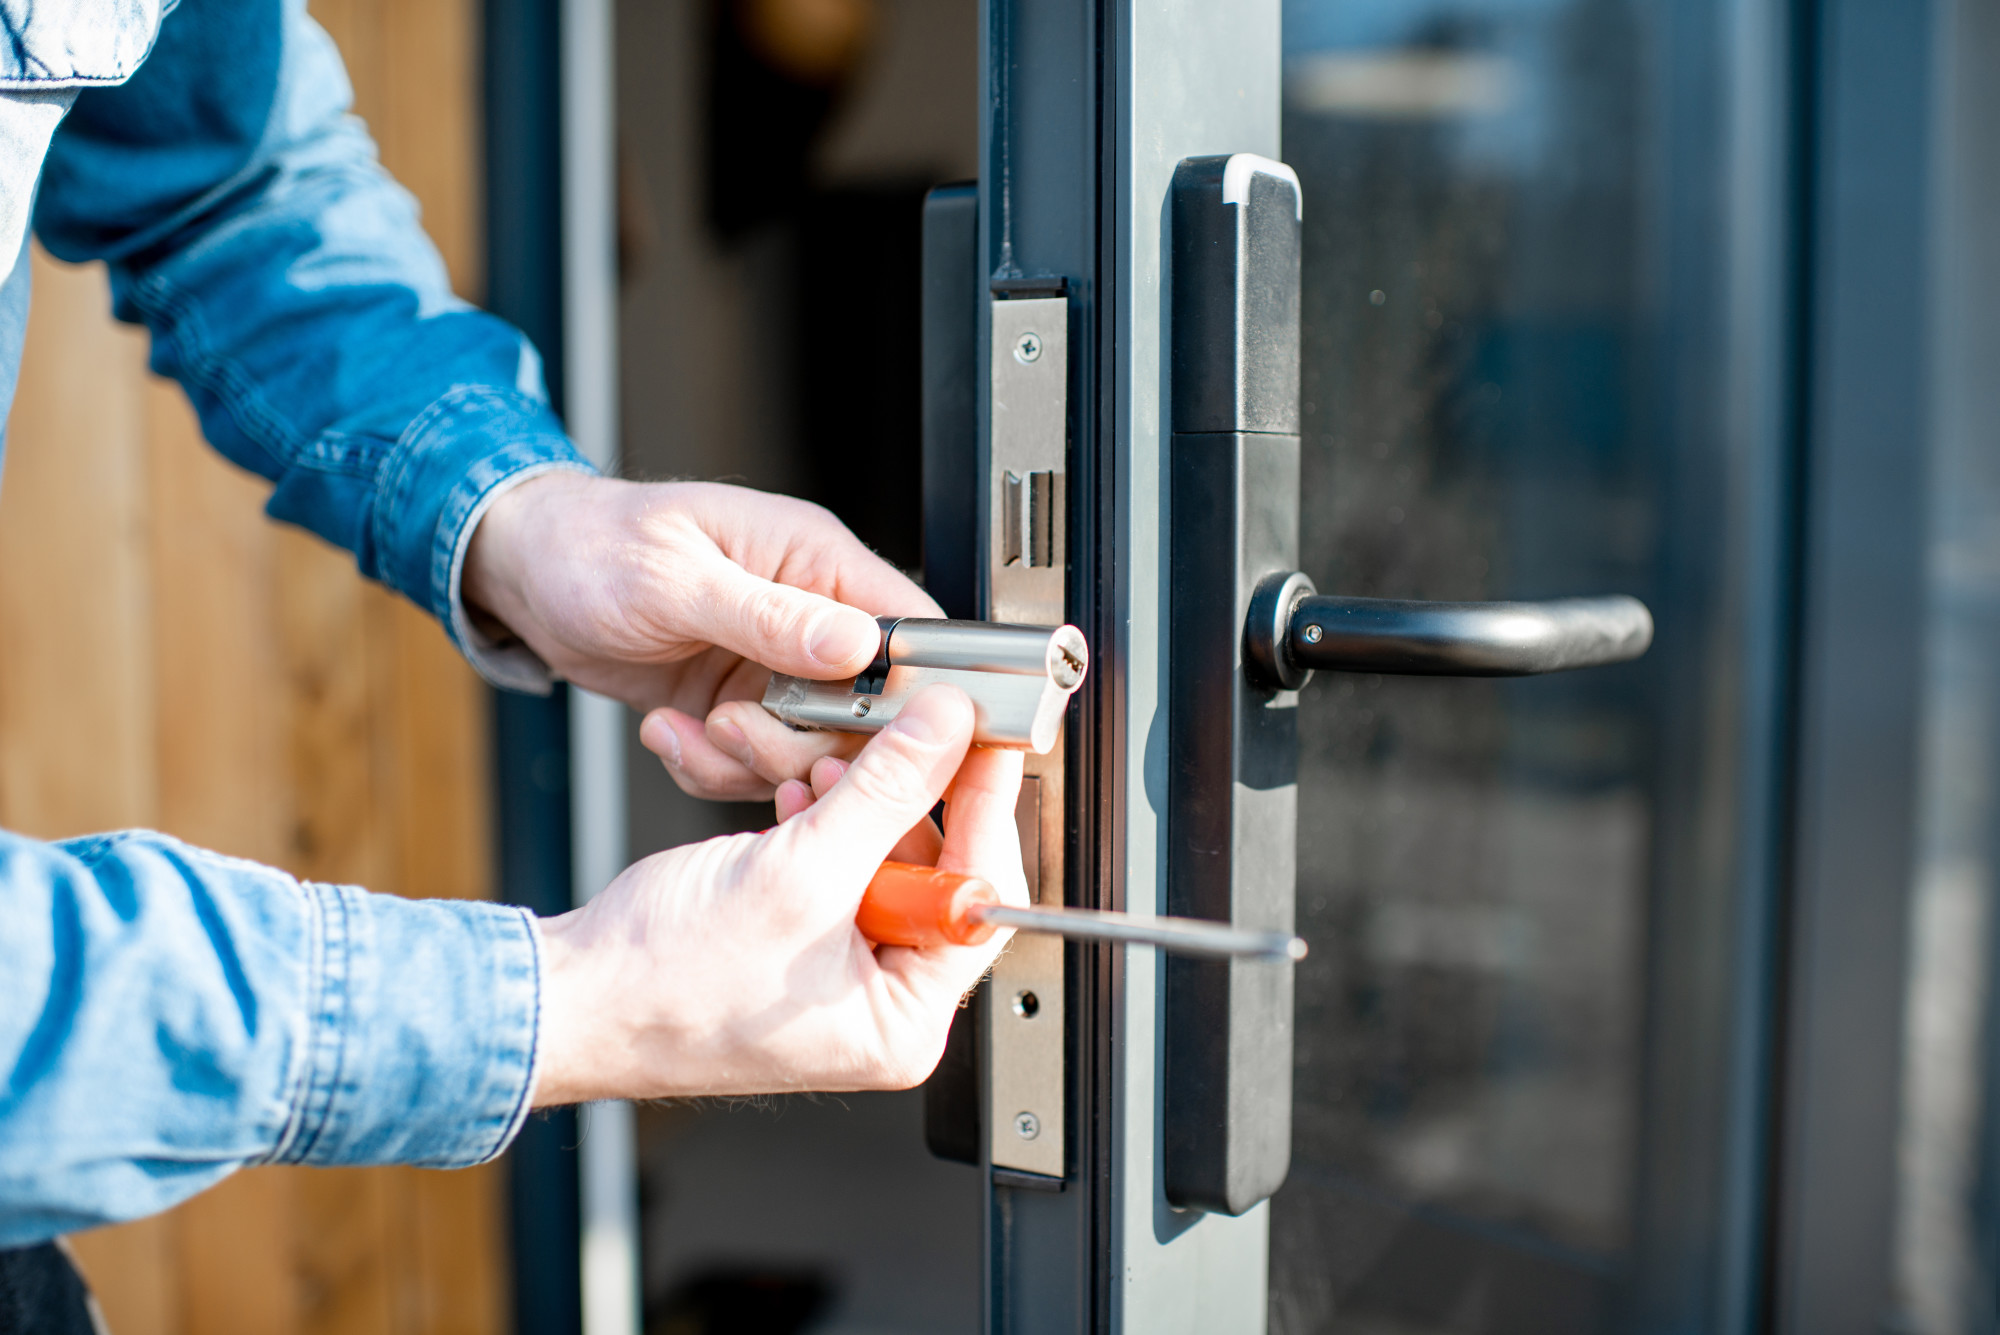 Lock Yourself Out? Here's How to Find the Right Locksmith